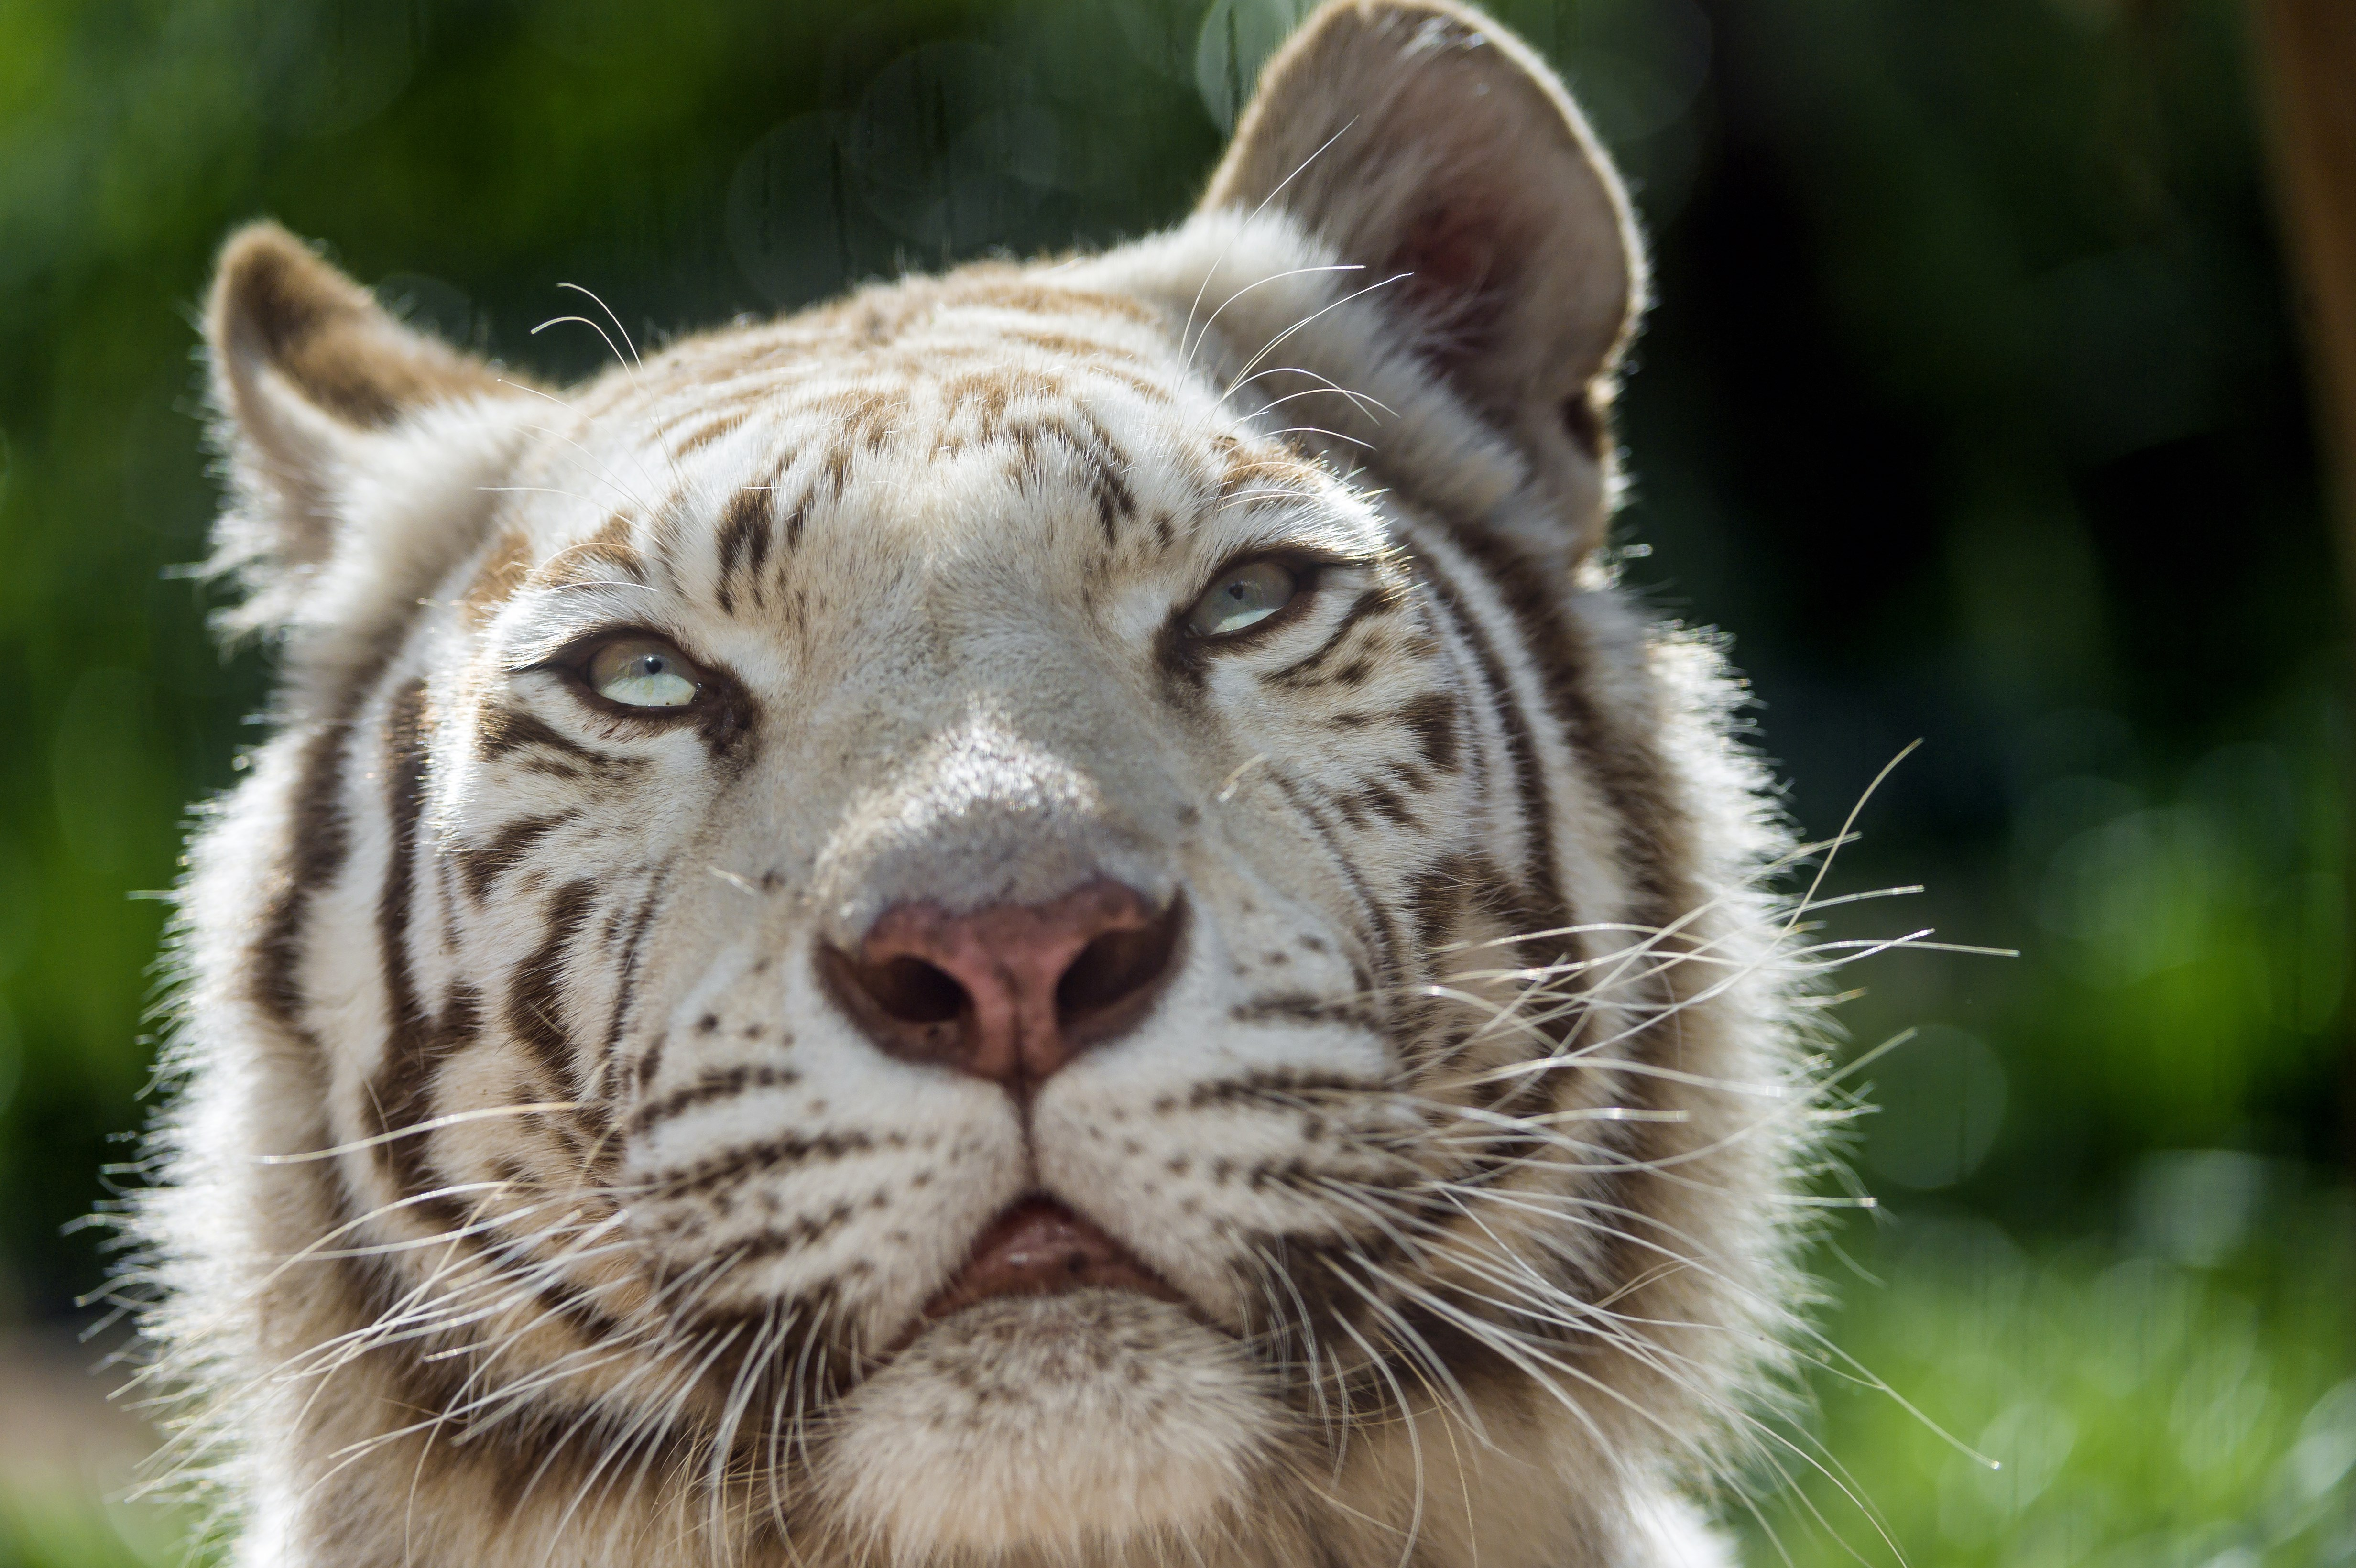 white tiger 4k ultra hd wallpaper » High quality walls